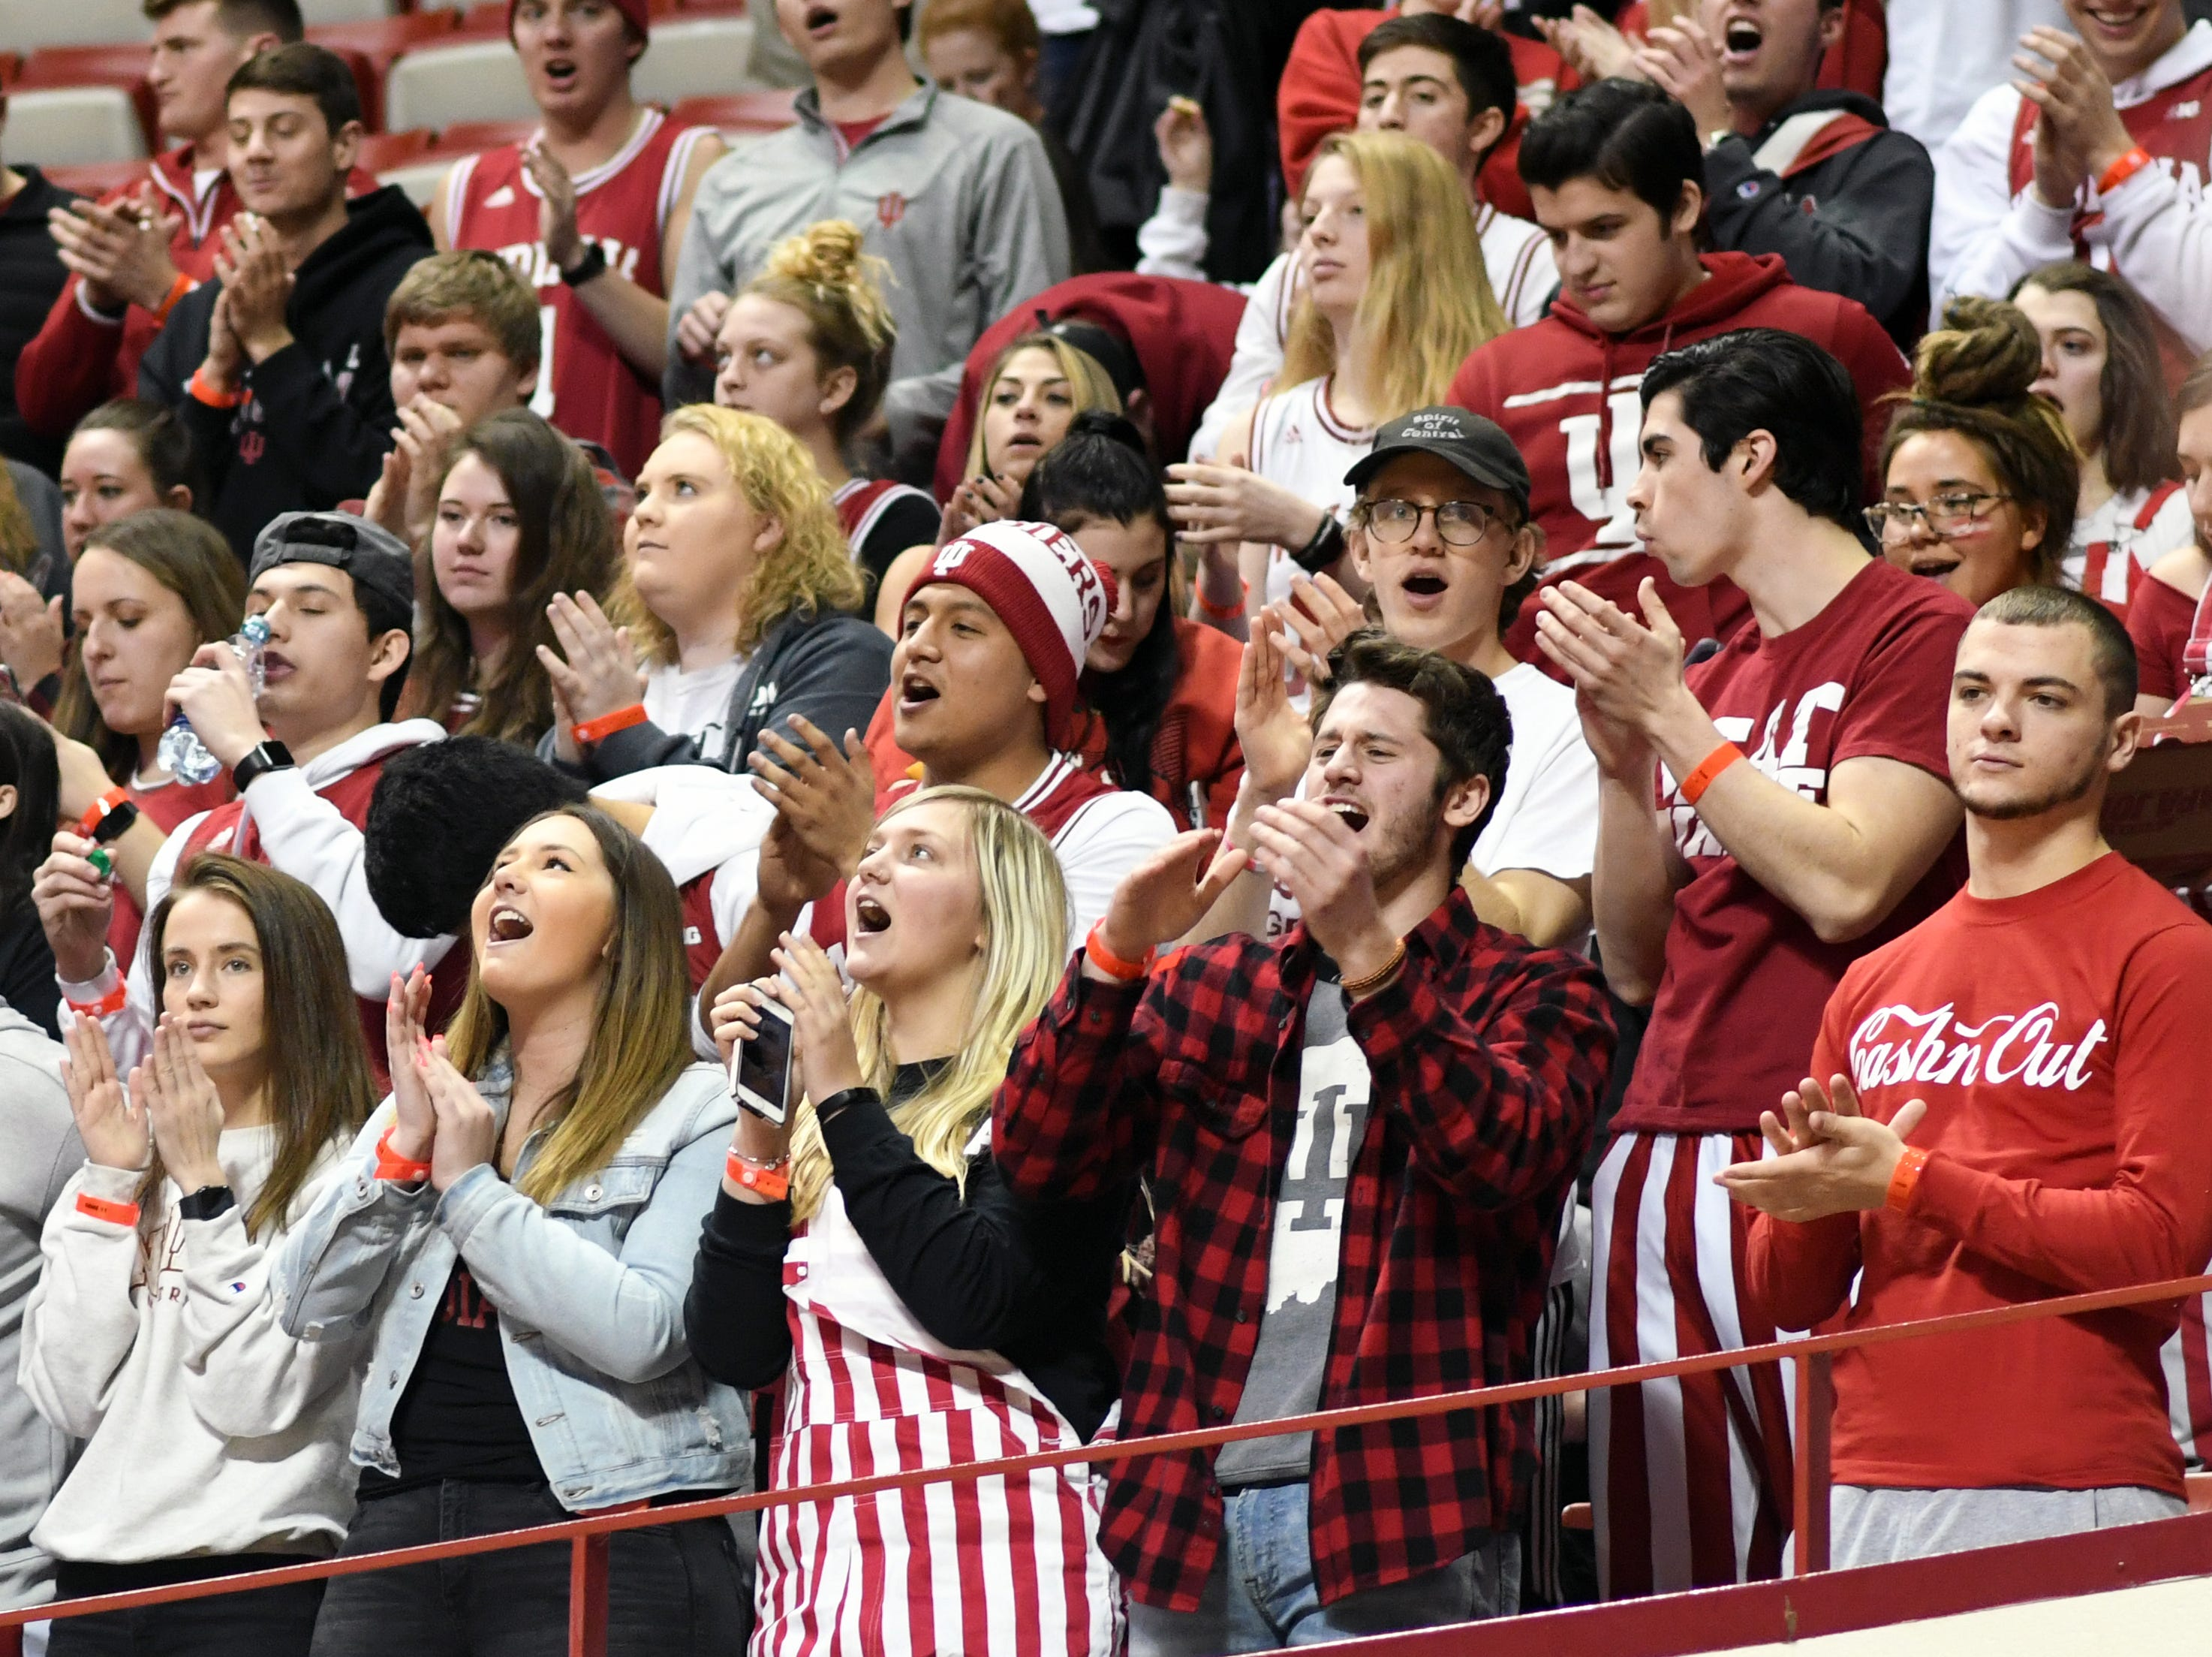 The Indiana student section cheers as IU takes the court for warm-ups prior to the start of the Indiana-Purdue game at Simon Skjodt Assembly Hall in Bloomington, Ind., on Tuesday, Feb. 19, 2019.